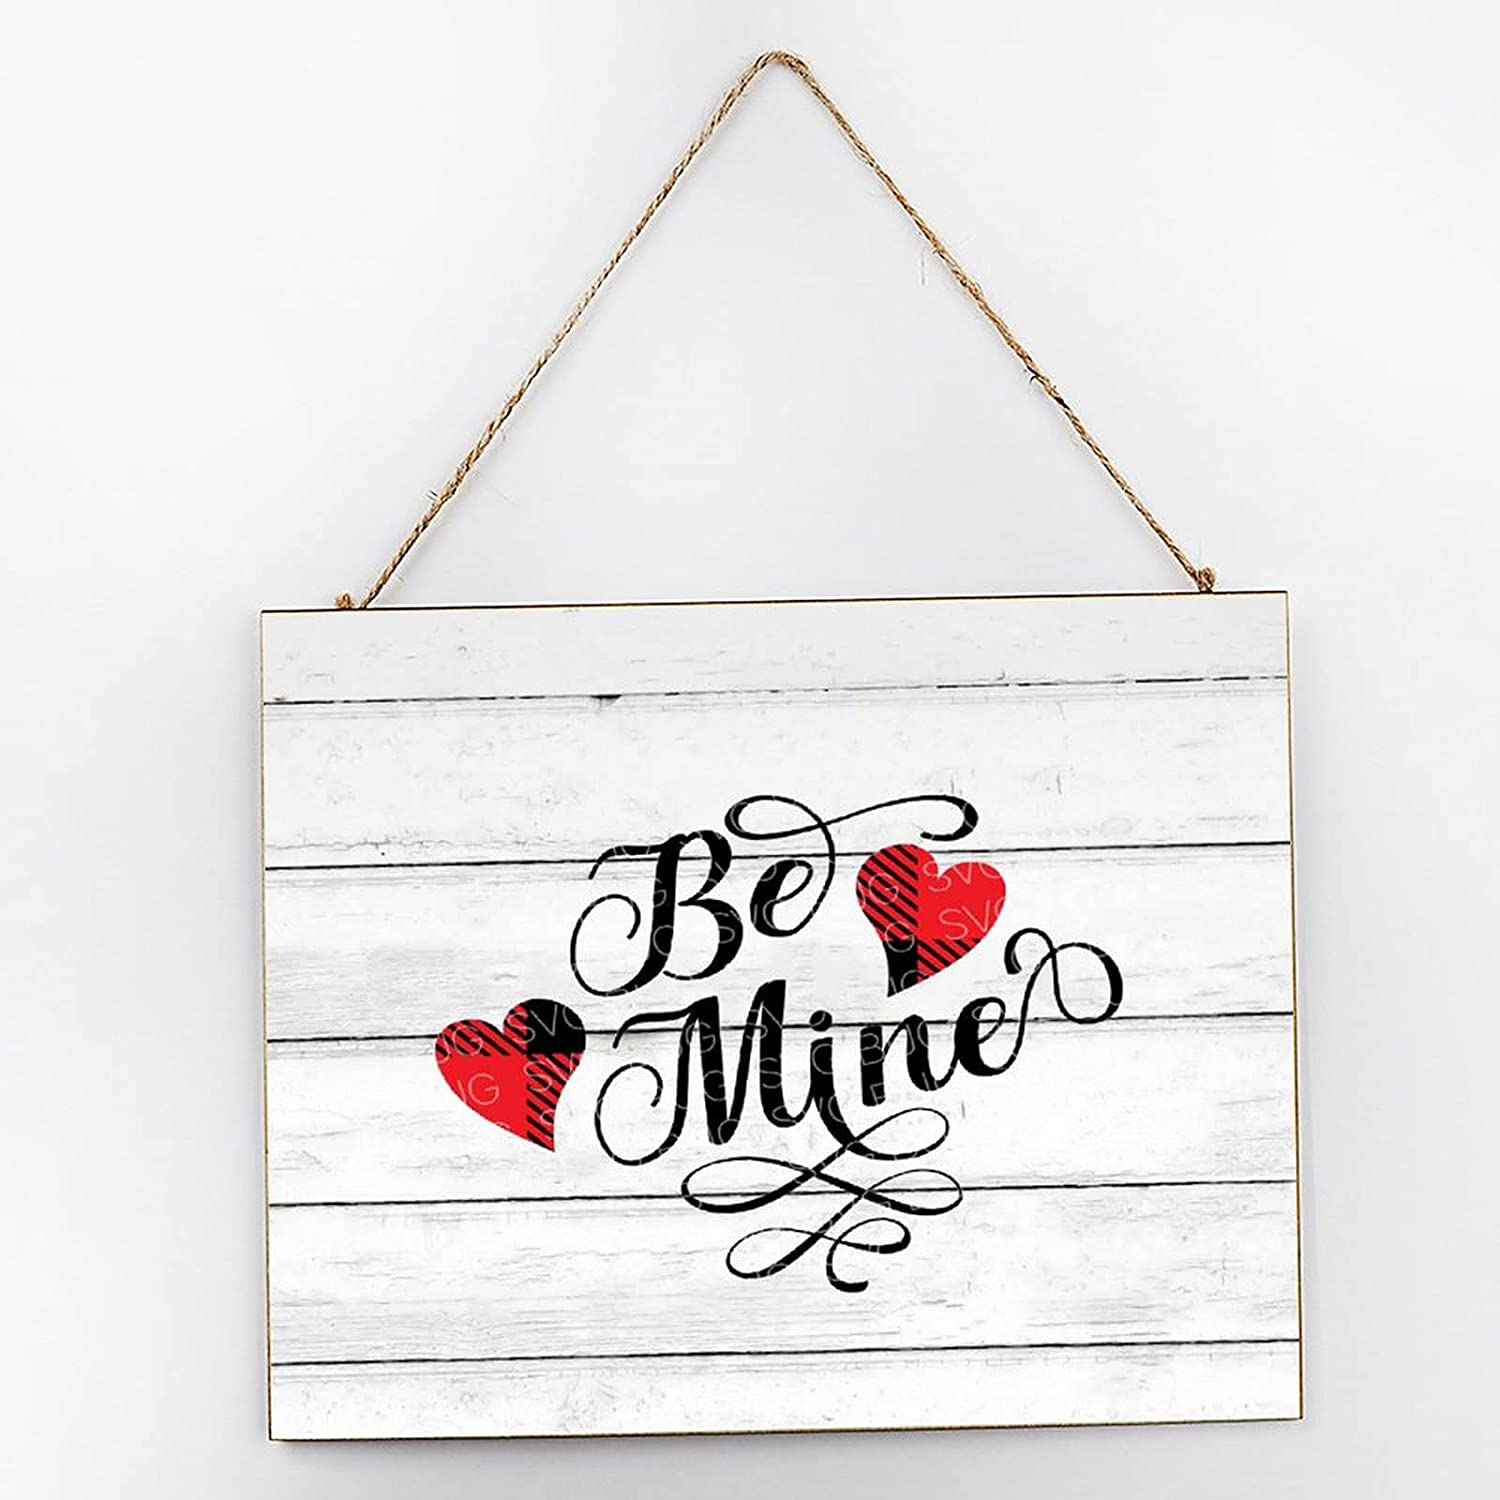 by Unbranded 12x10 Wooden Mail order Sign,Be Valentine's Mine Day Nurse overseas